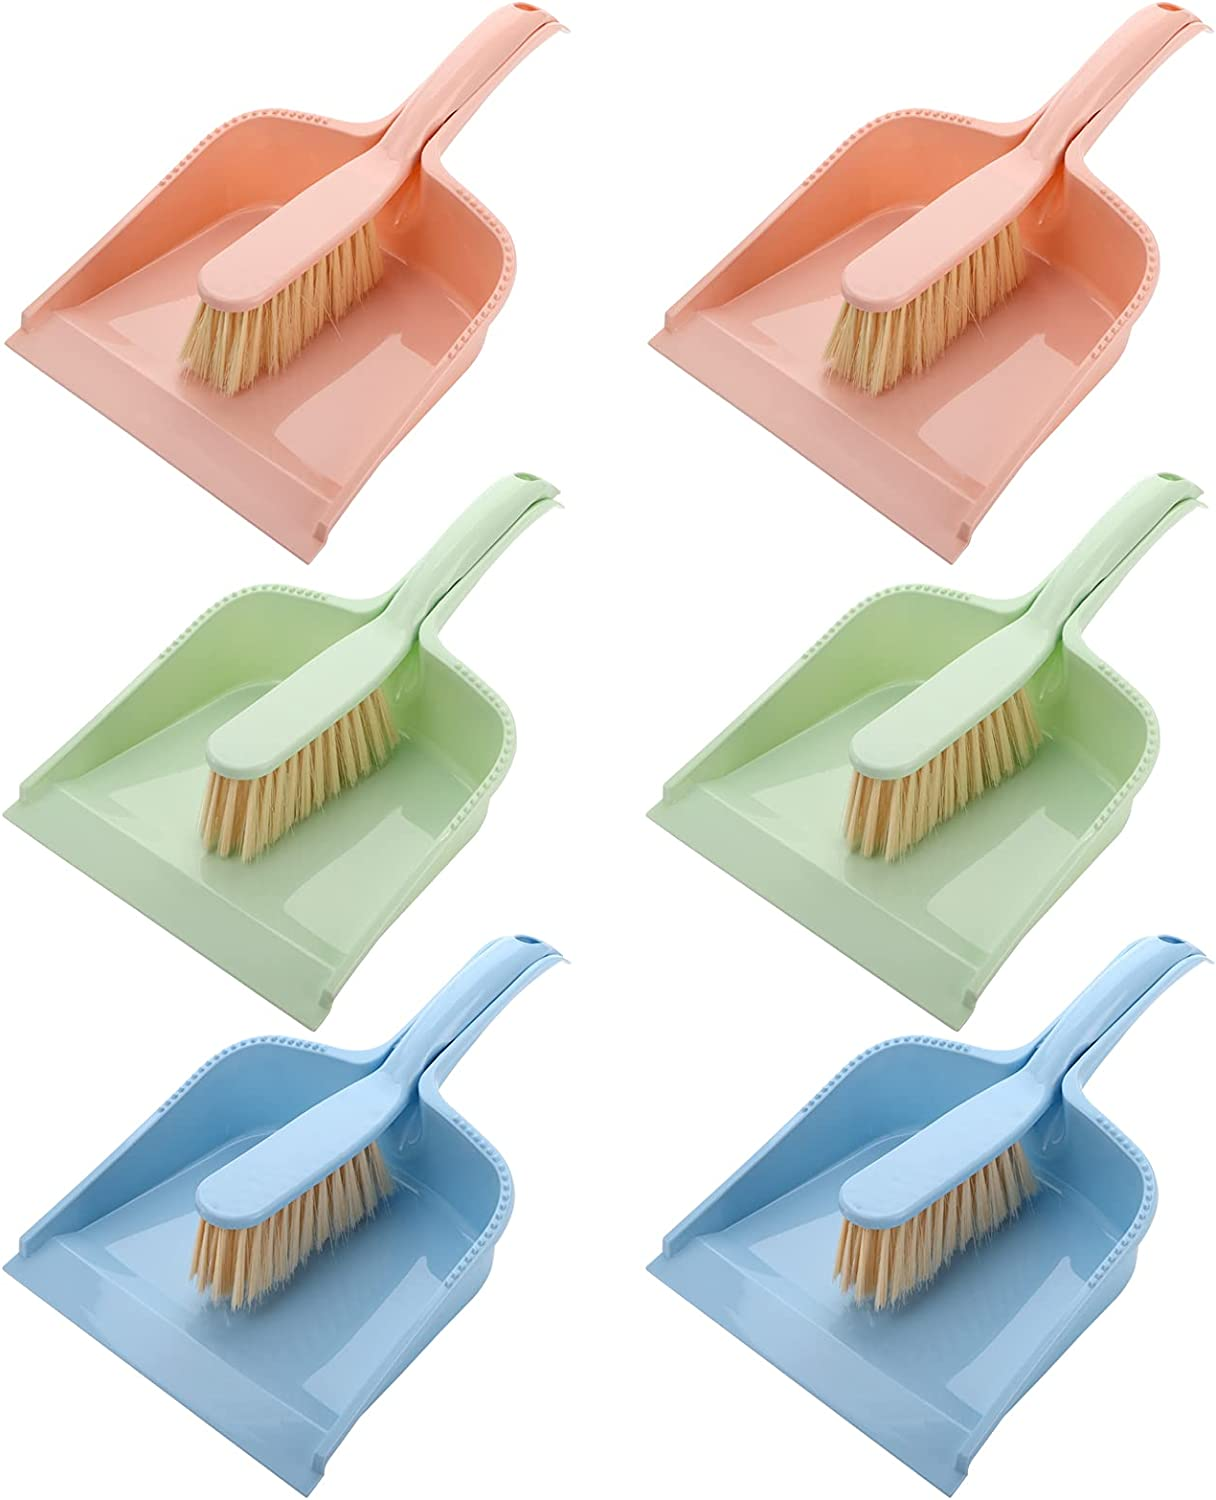 Cedilis online shop 6 Pack Deluxe Dustpan and Brush Set Portable Small Broom D